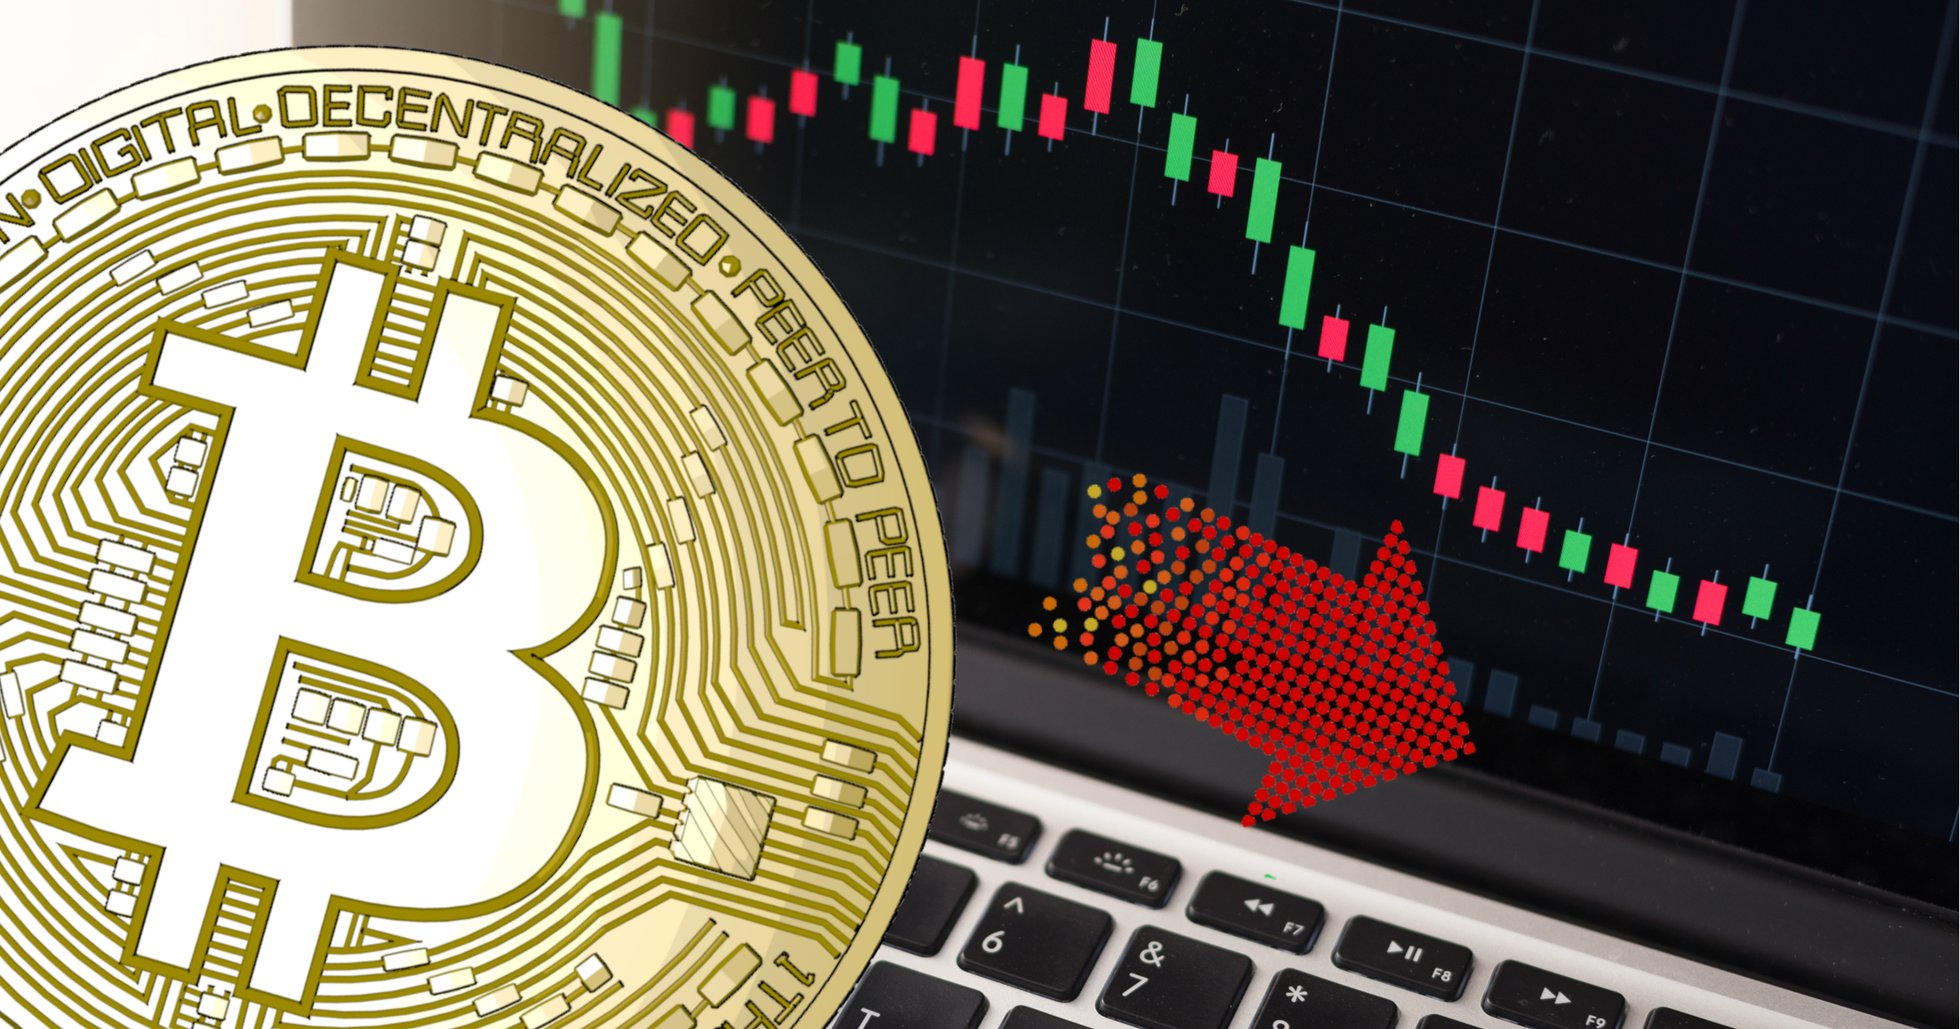 Daily crypto: Markets go downwards – biggest currencies show red numbers.